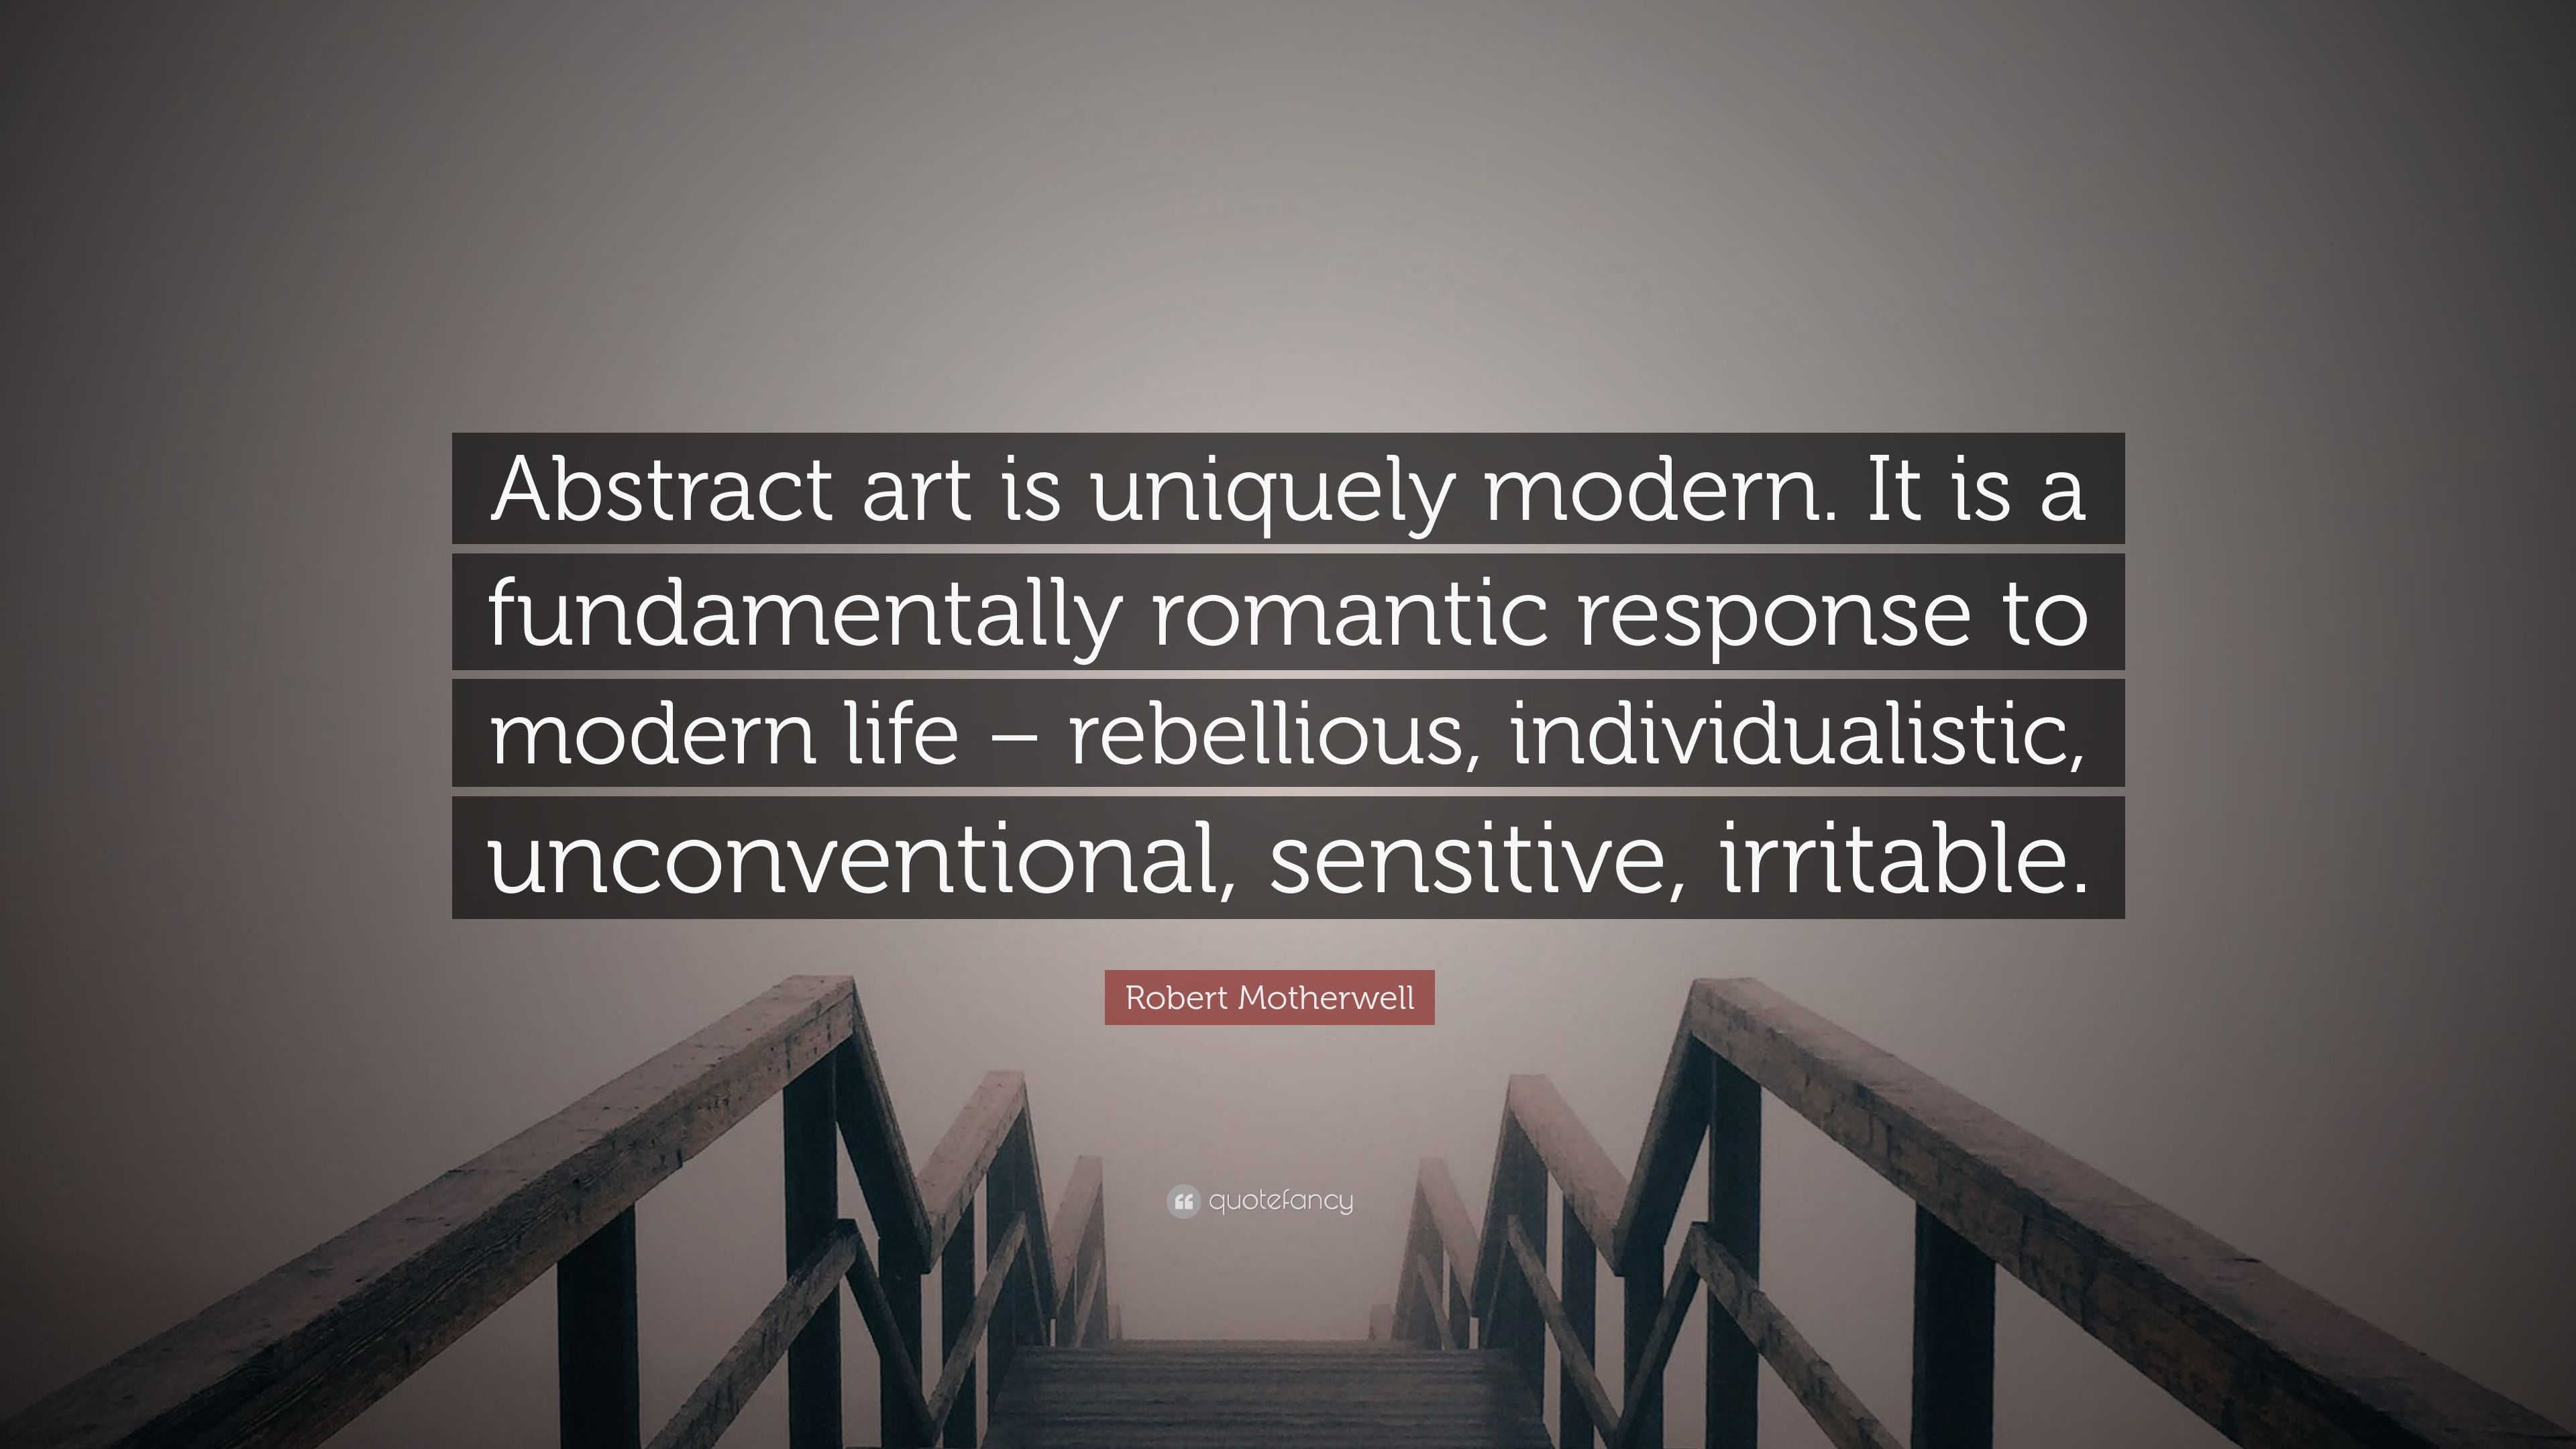 abstract art is fundamentally